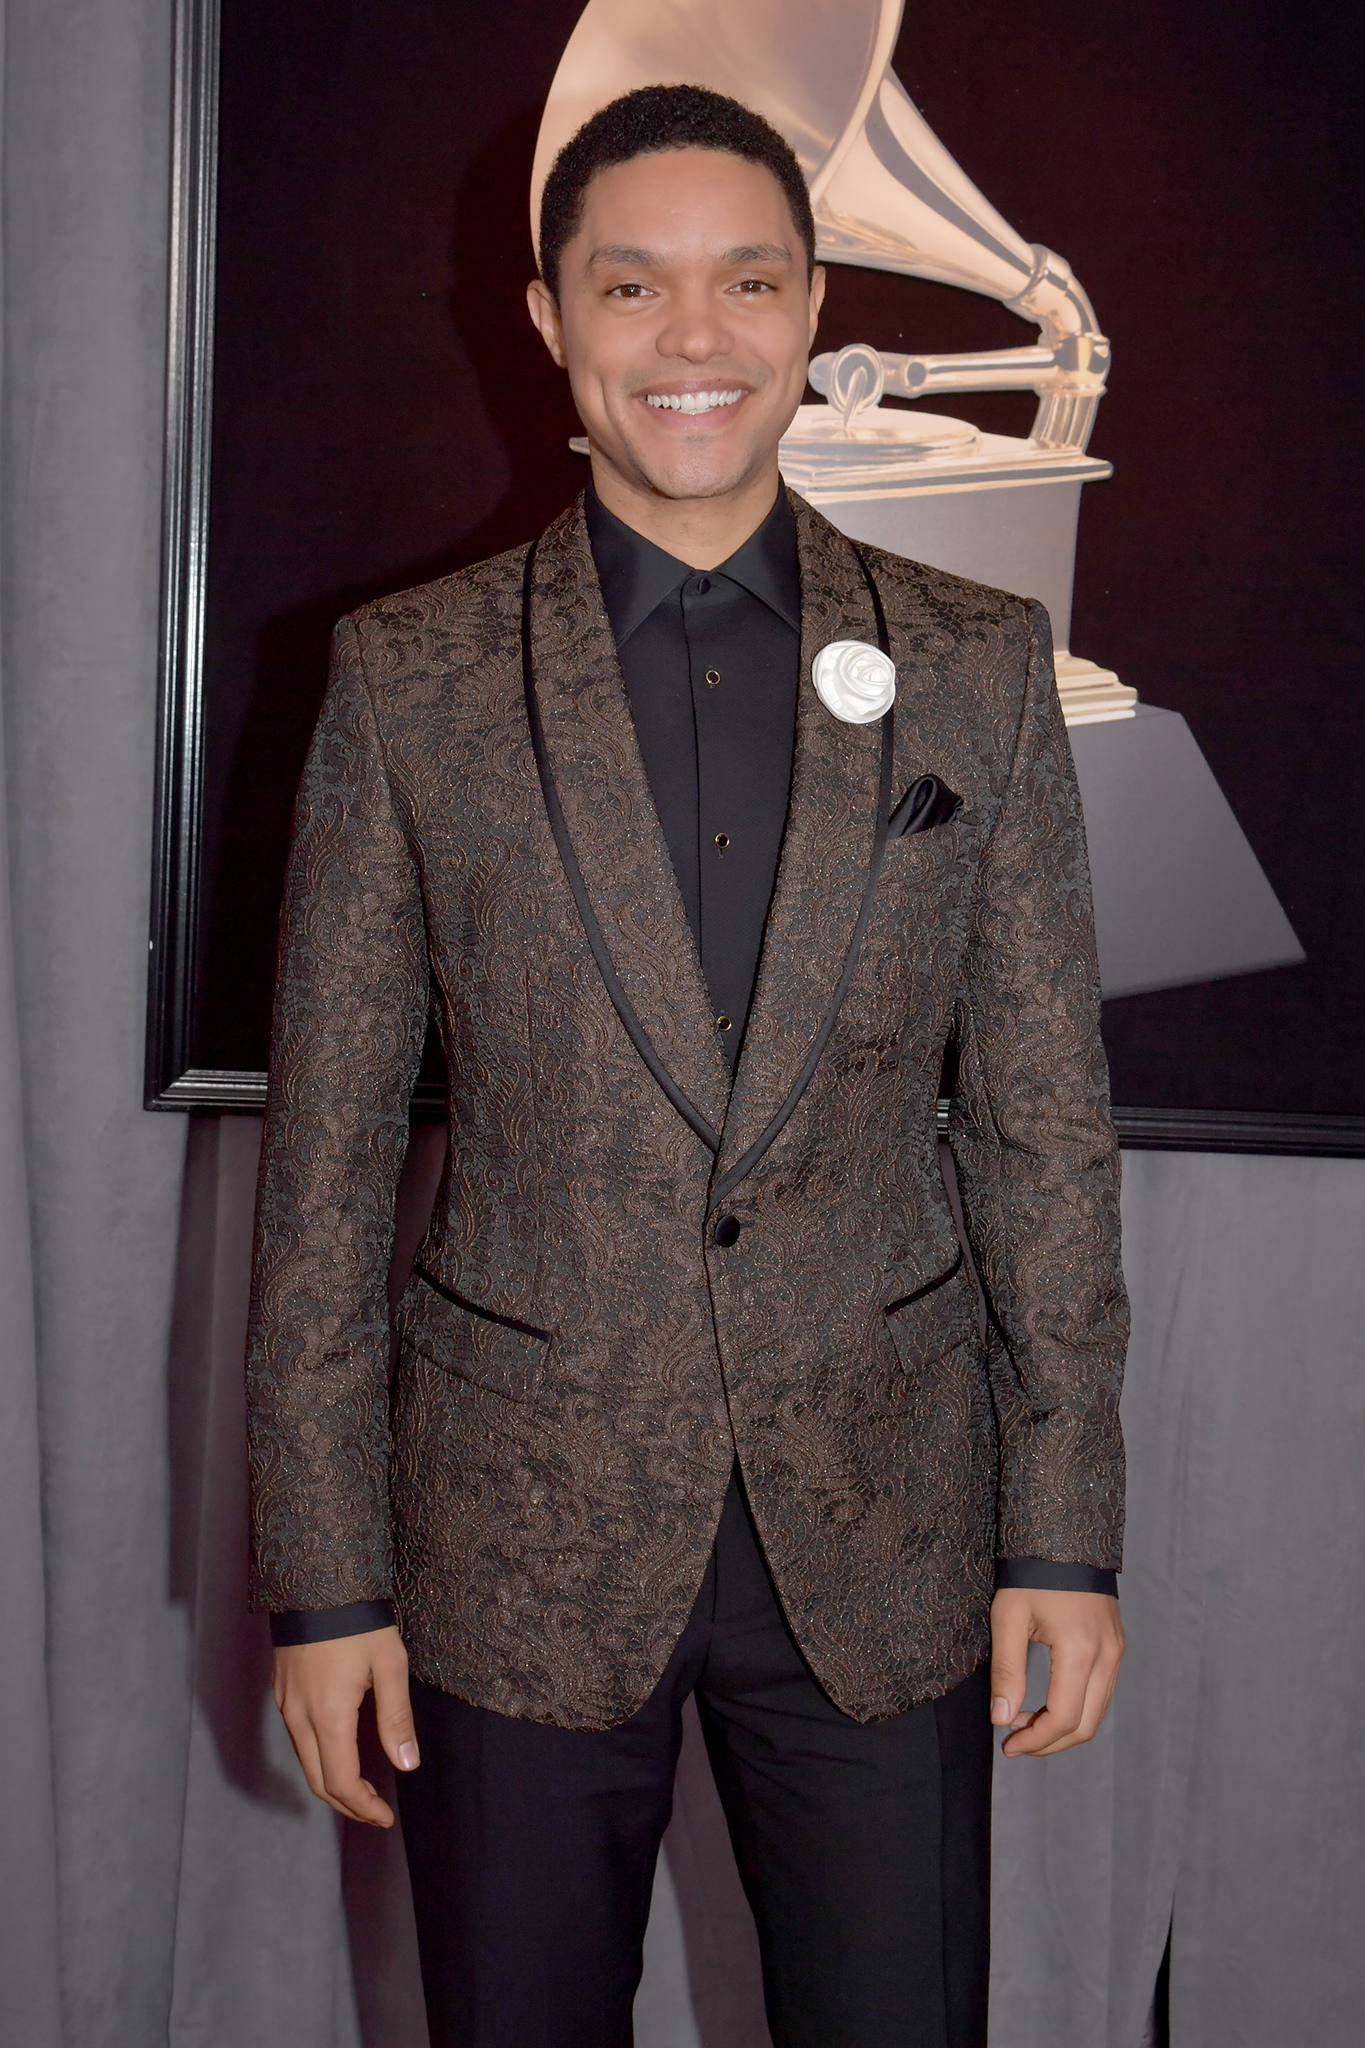 Comedian Trevor Noah attends the 60th Annual GRAMMY Awards at Madison Square Garden on January 28, 2018 in New York City.